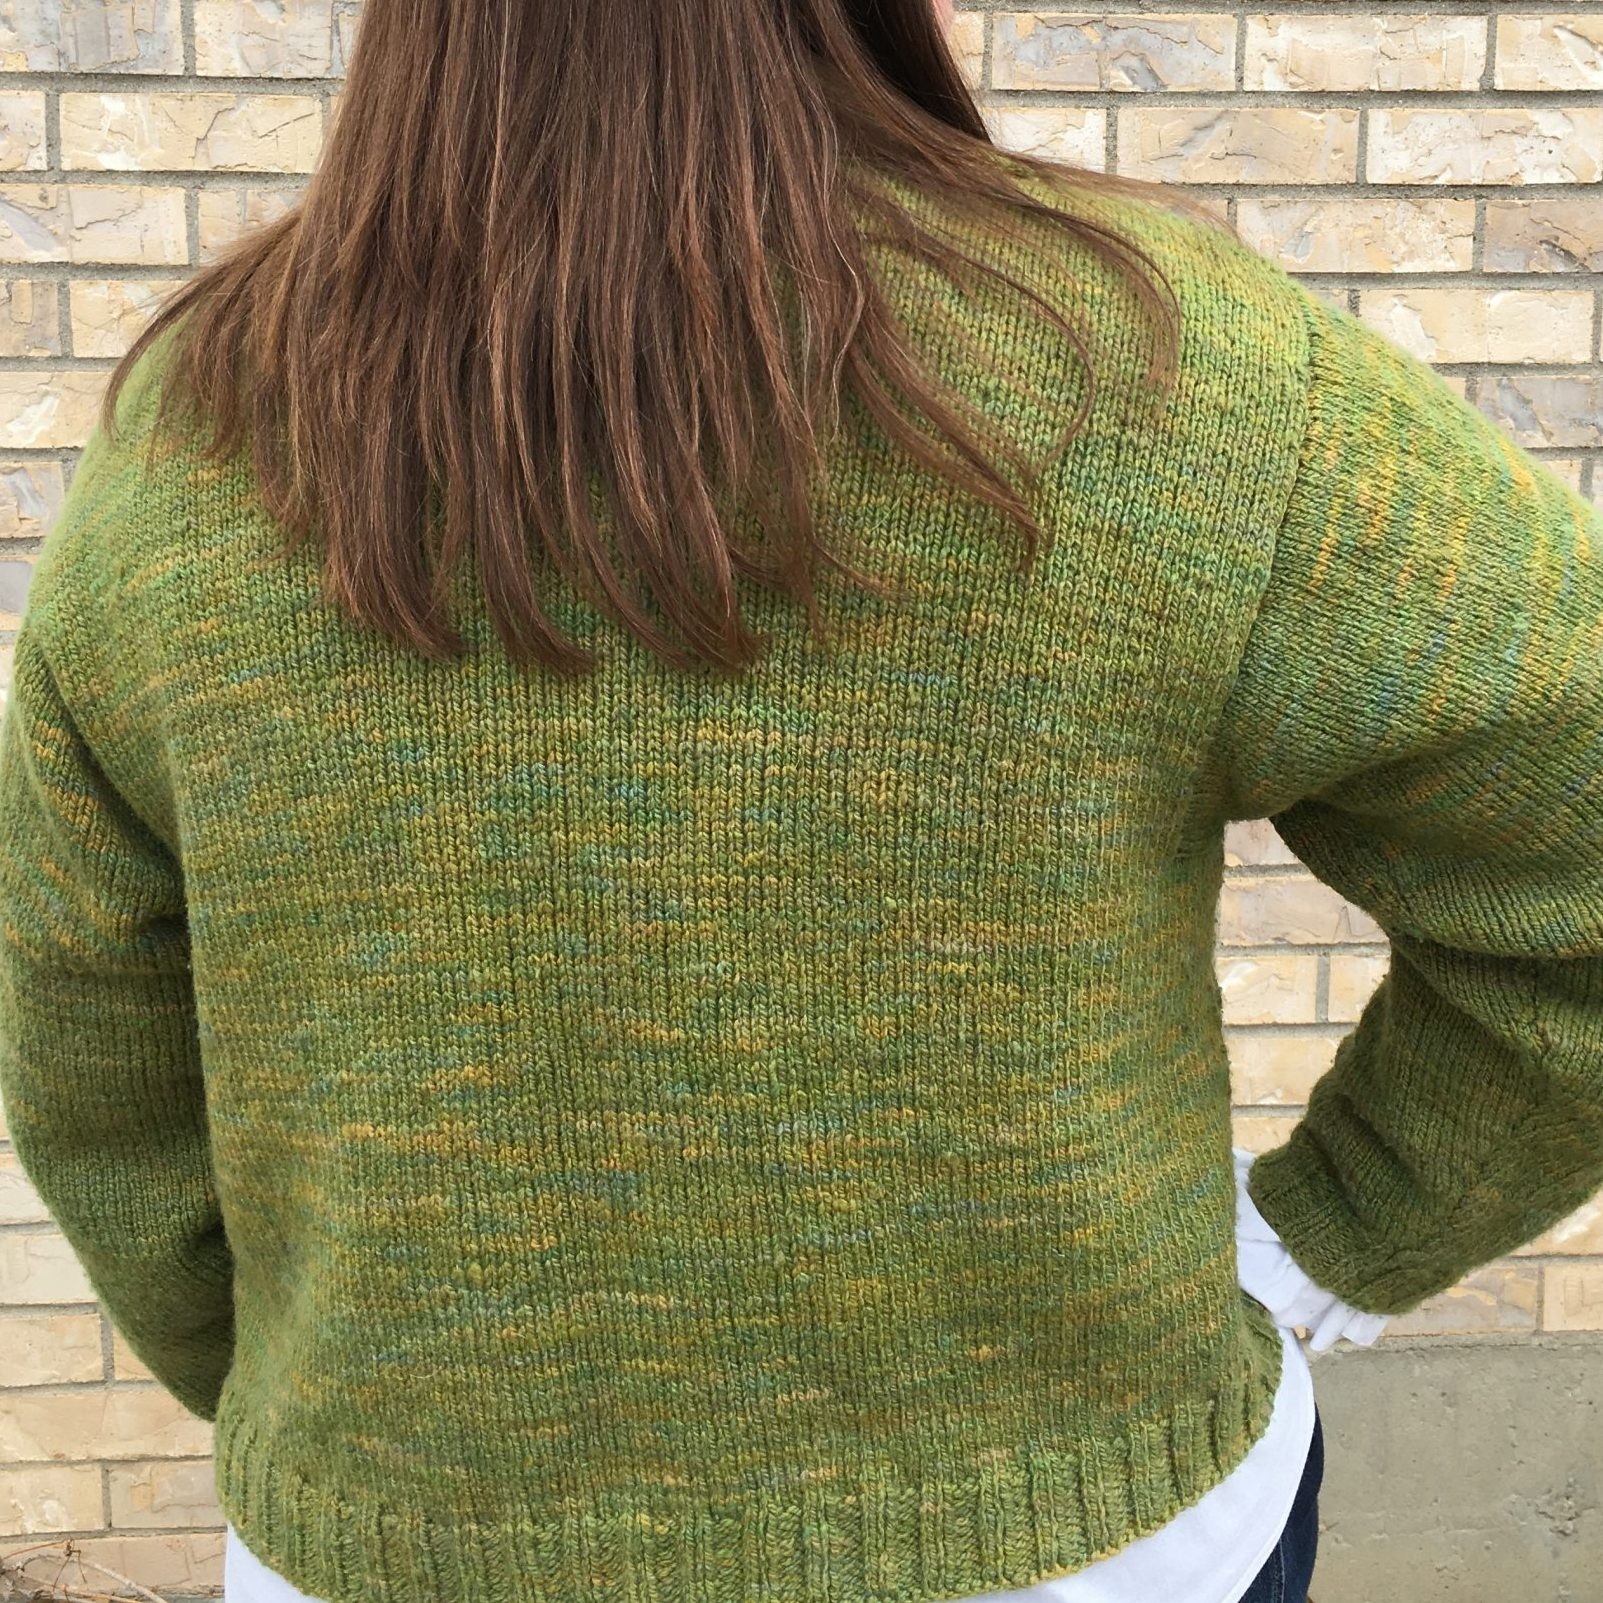 Sweater knit in Crabapple Leaf #1